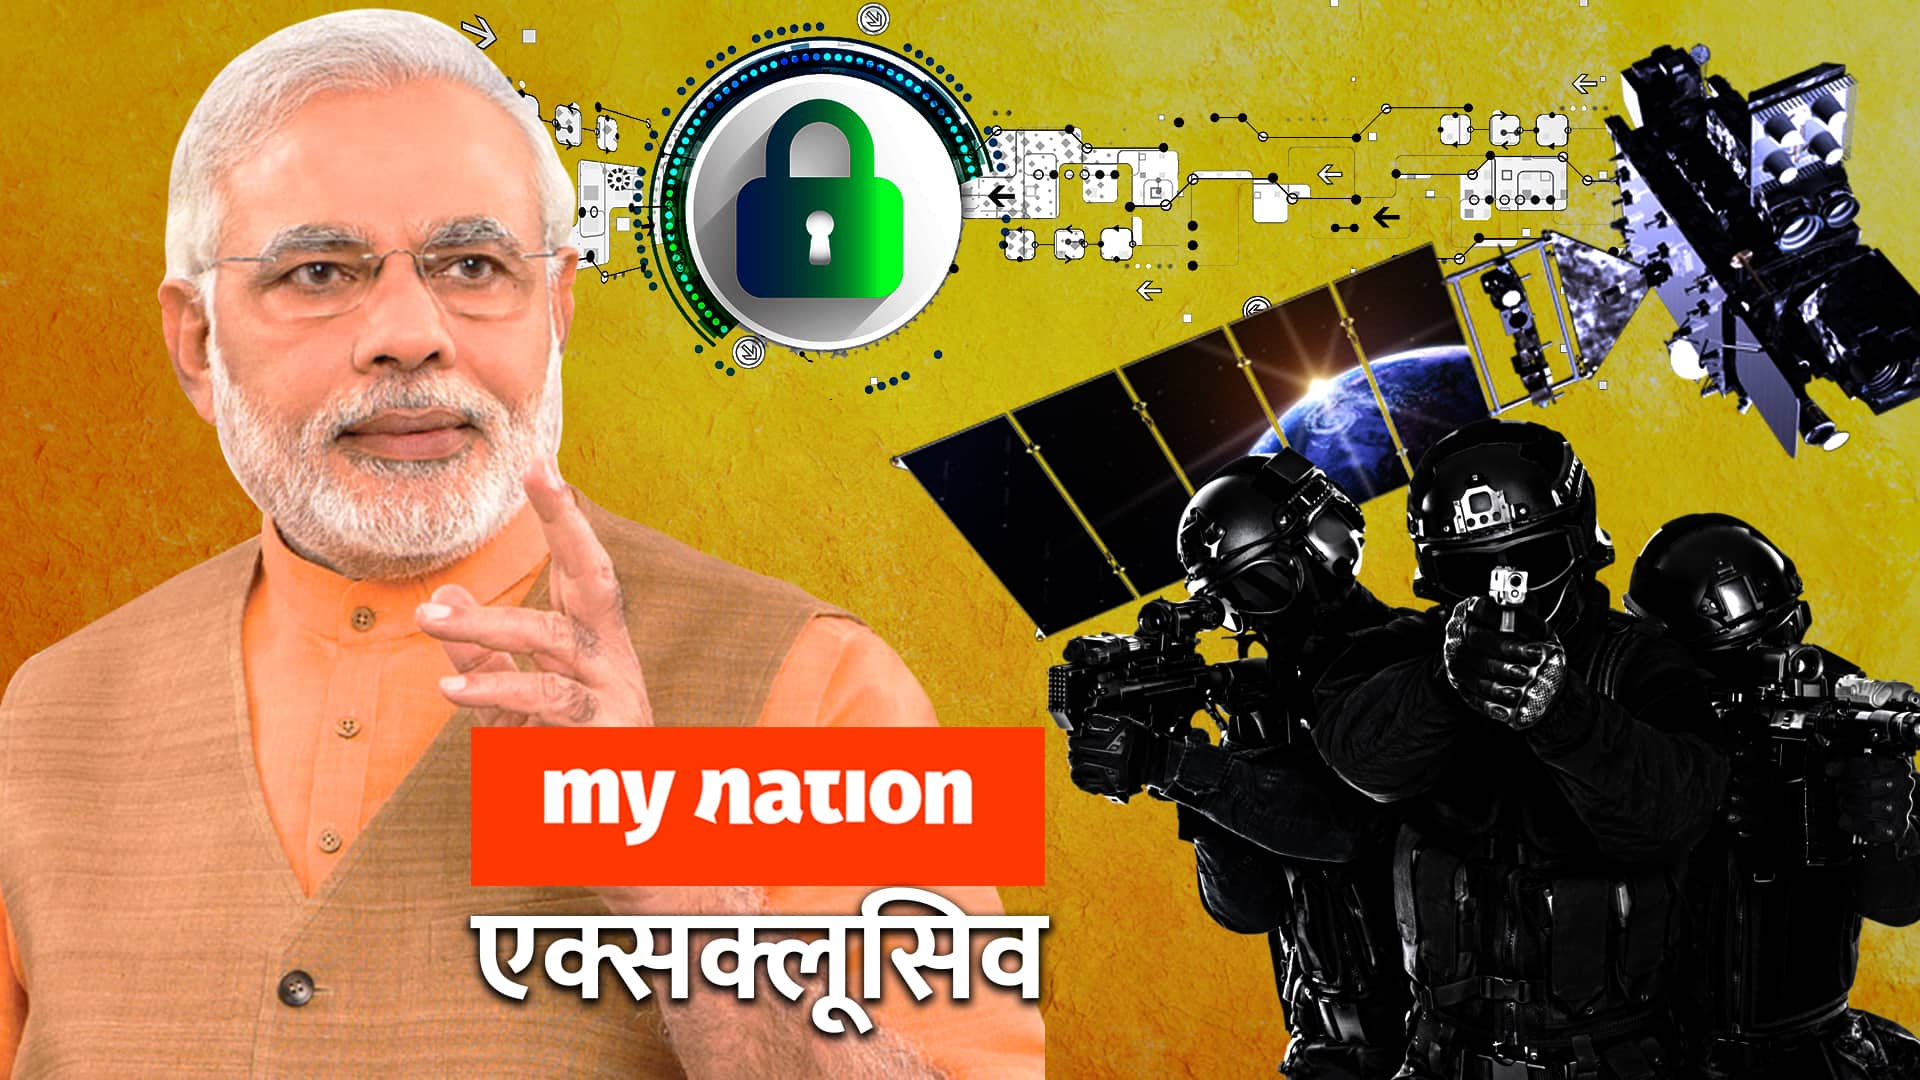 Surgical strikes anniversary: PM Modi approves new cyber, special forces, space divisions for armed forces